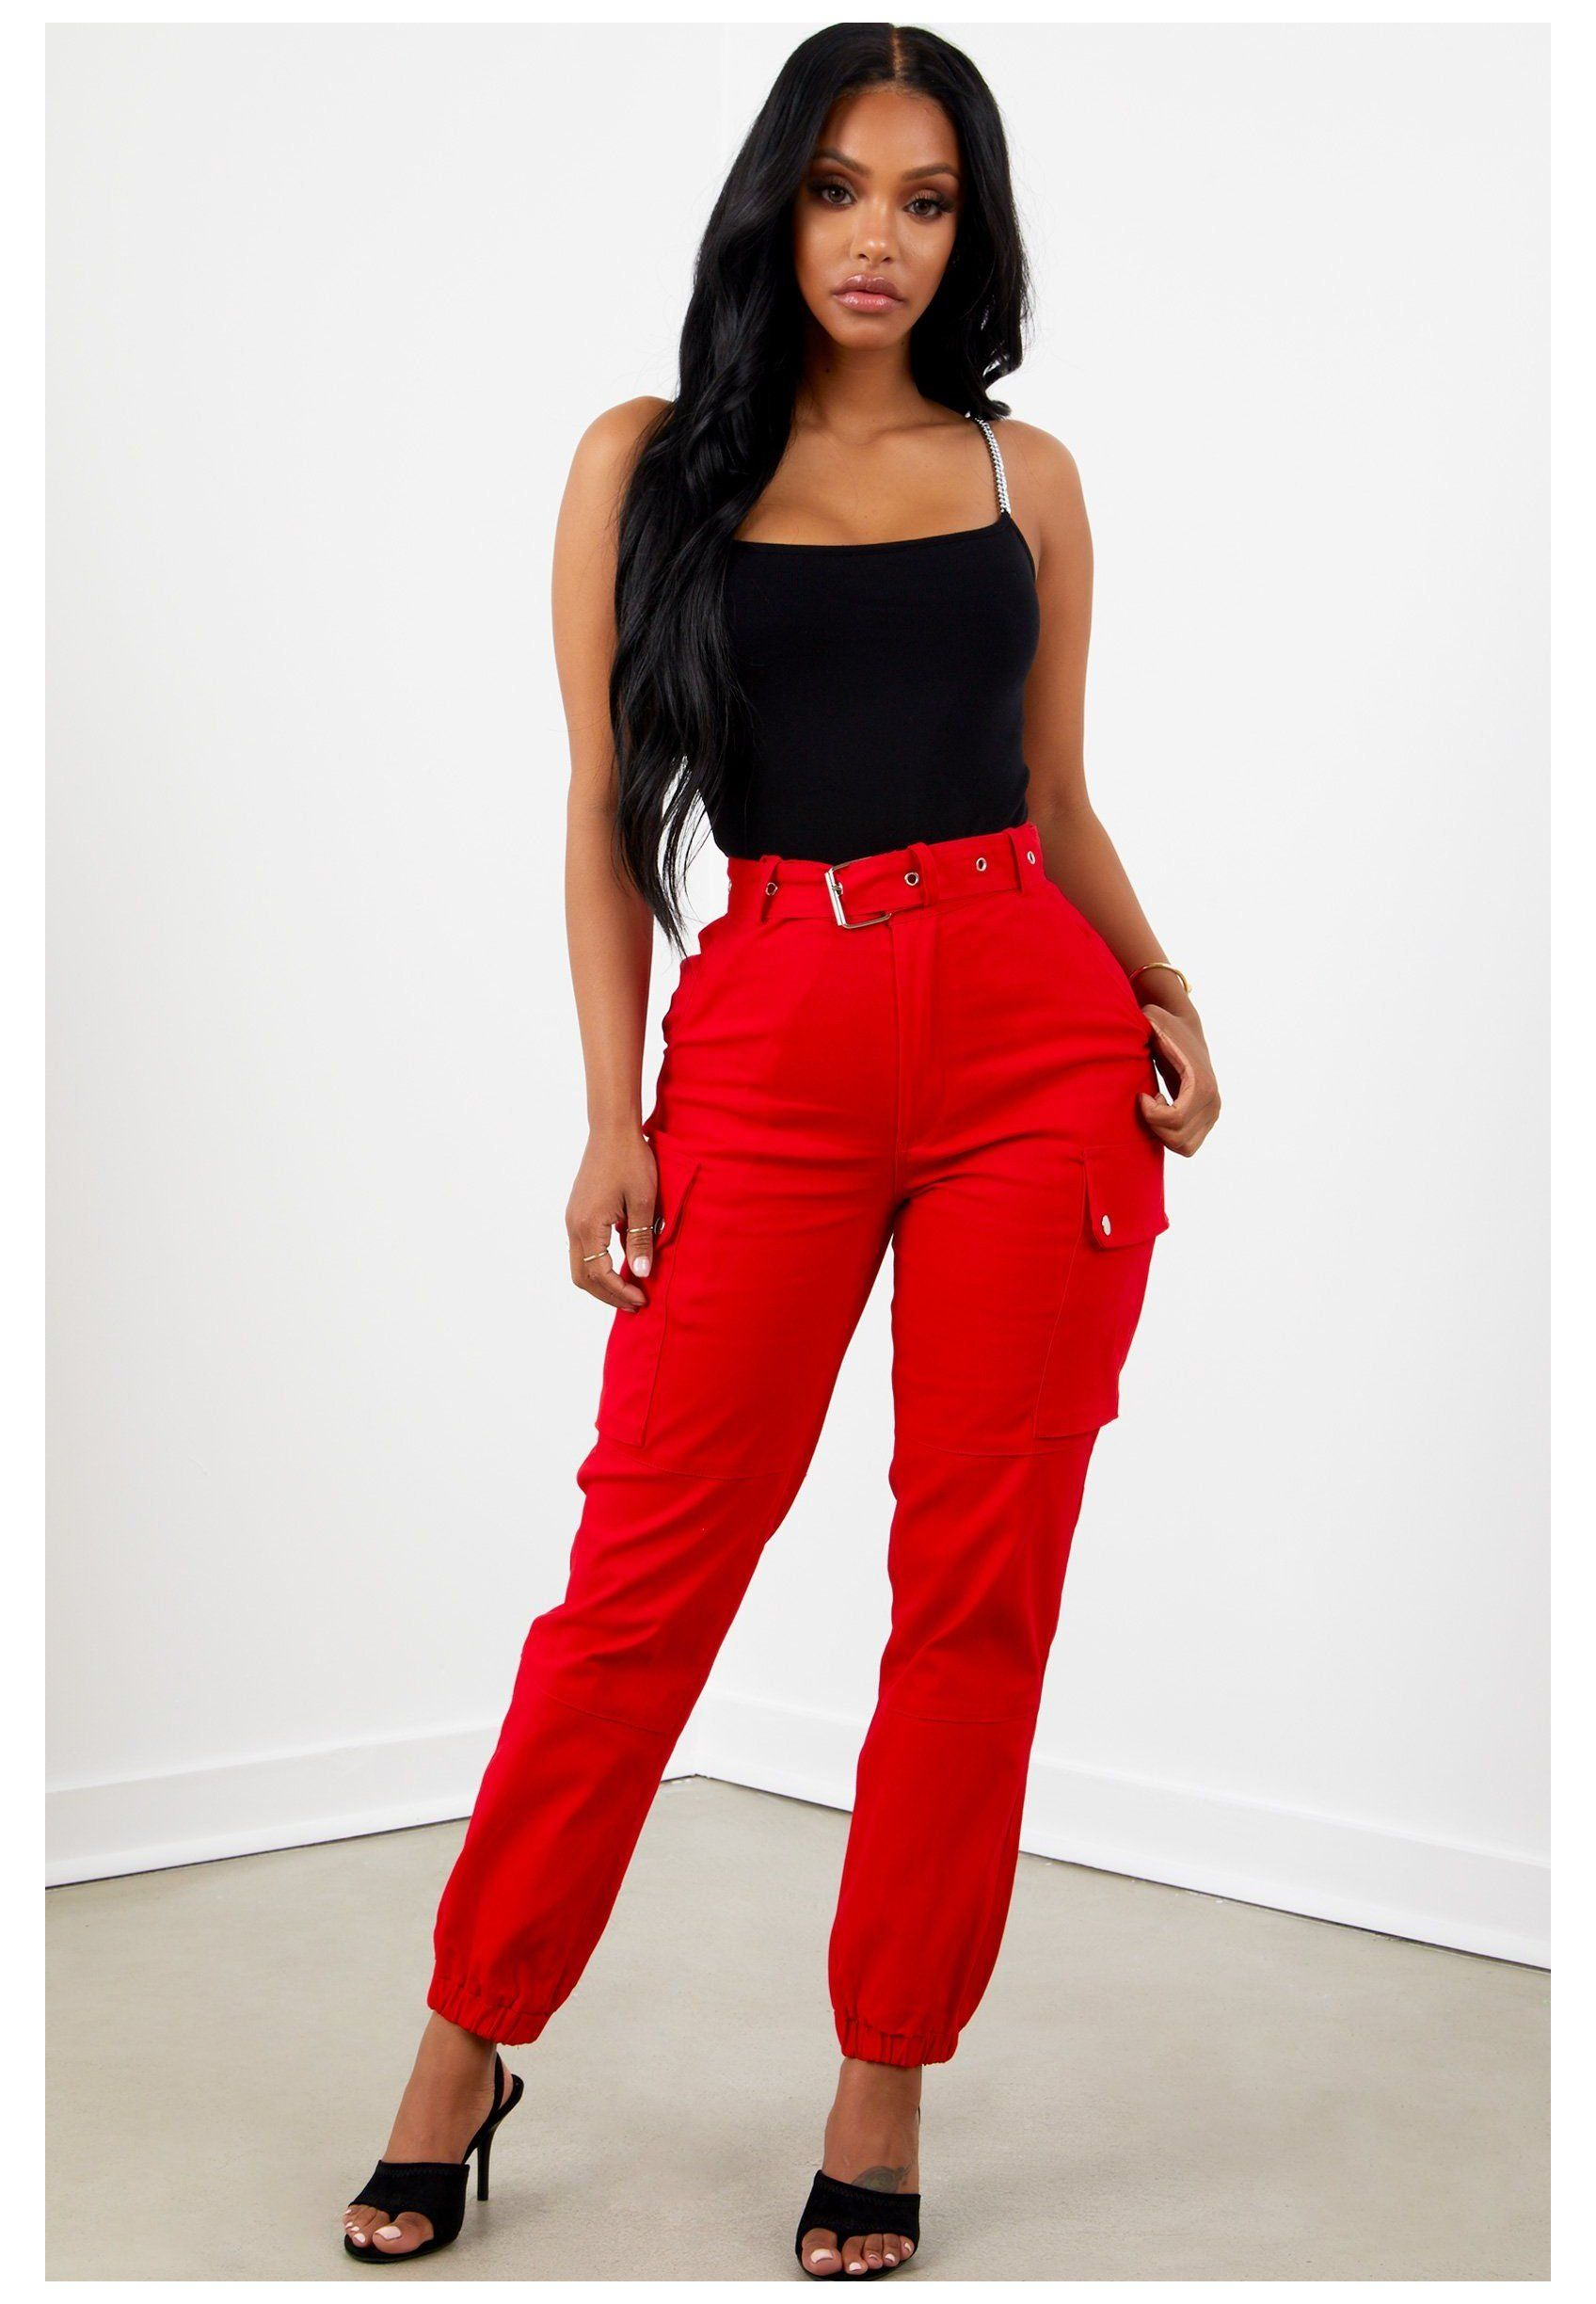 Sorella Boutique Women S Men S Fashion Clothing Apparel Red Cargo Trousers Redcargotrousers In 2021 Fashion Pants Pants Women Fashion Cargo Pants Outfit